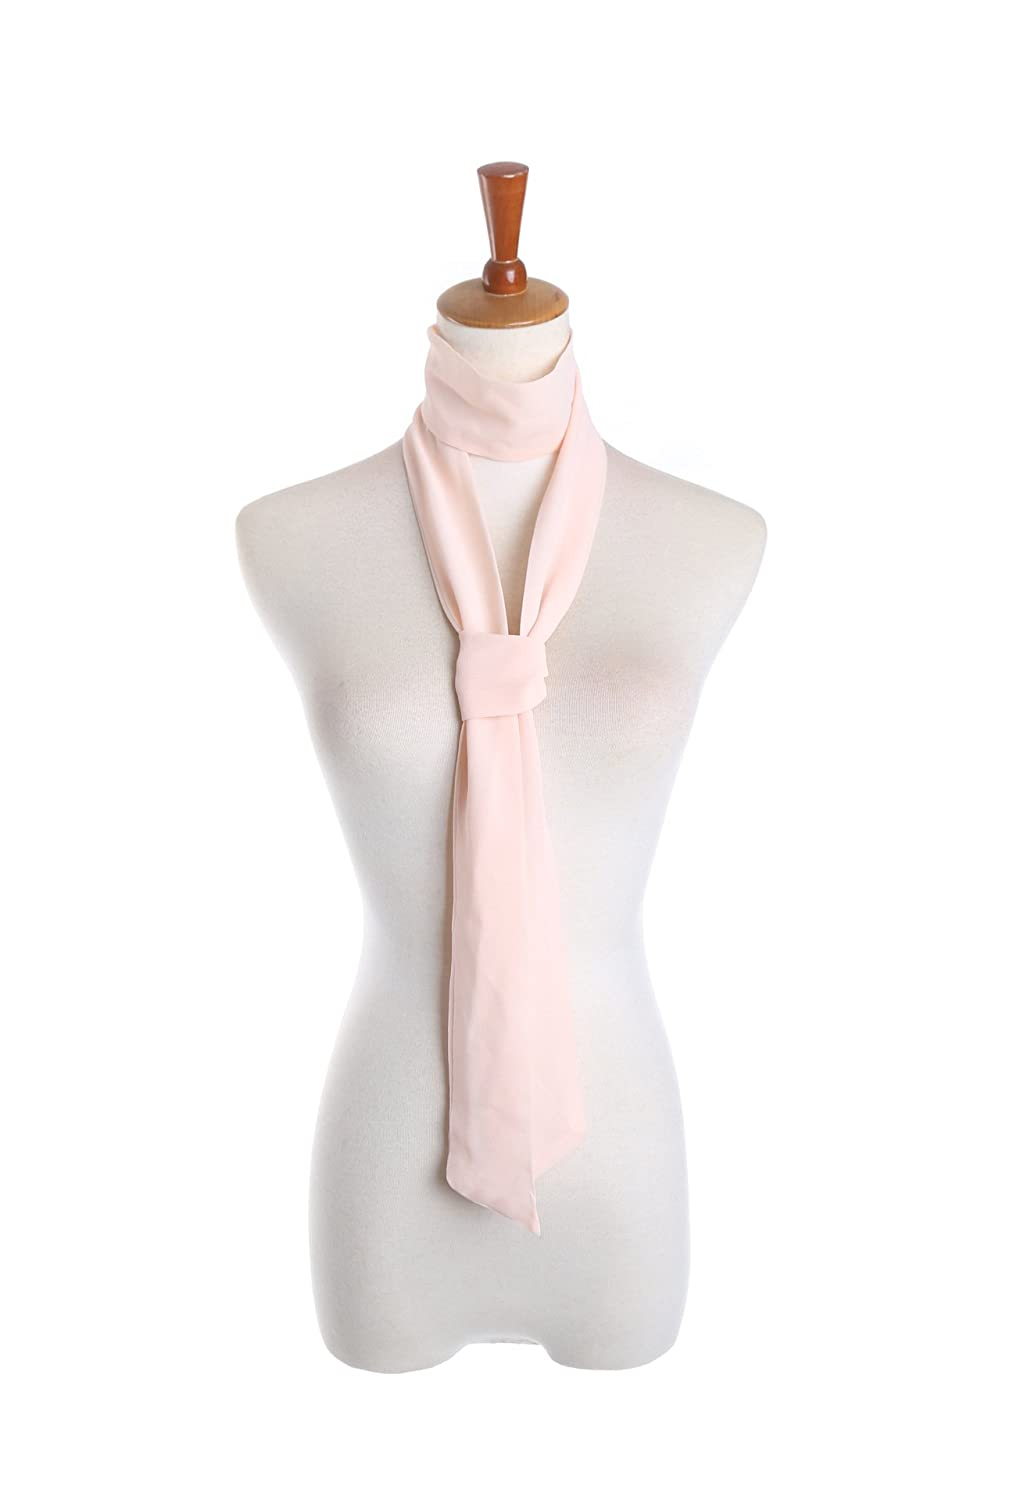 Women Solid Chiffon Neck Skinny Thin Tie Long Scarf Neckerchief Hairband Ribbon Belt 200×7cm